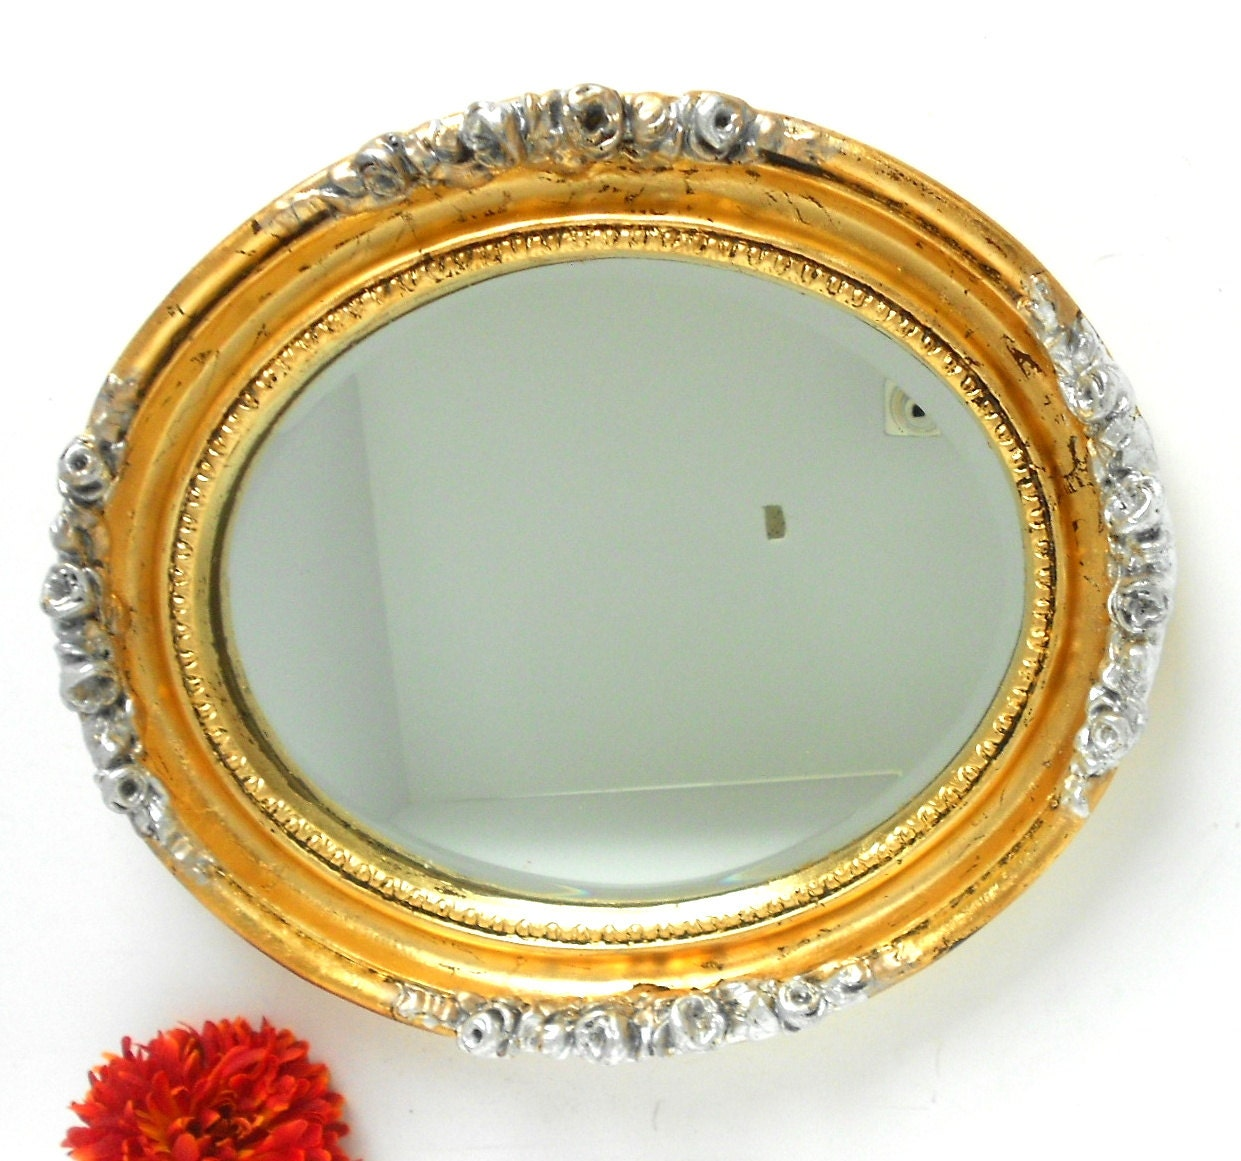 Mirror large oval mirror gold mirror oval wall mirror for Big gold mirror